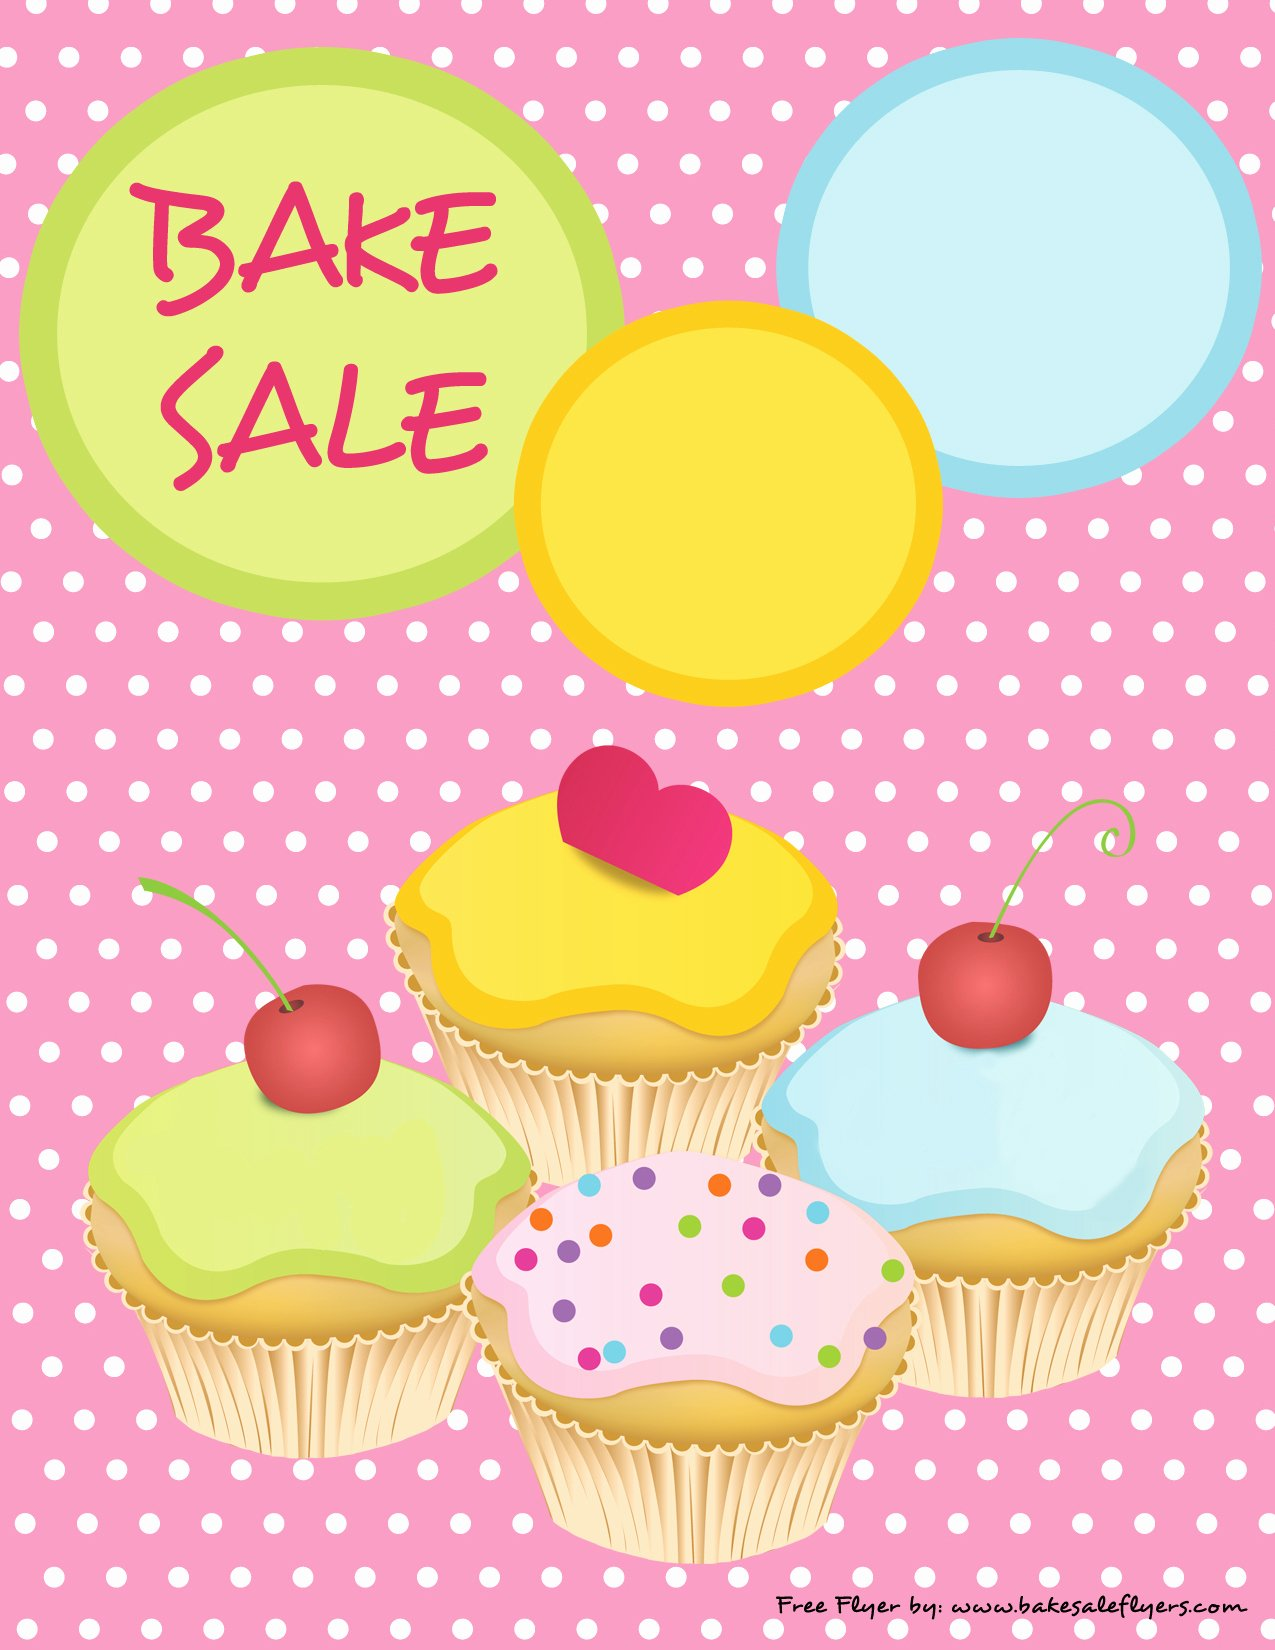 Bake Sale Flyer Template Free Beautiful Bake Sale Flyers – Free Flyer Designs